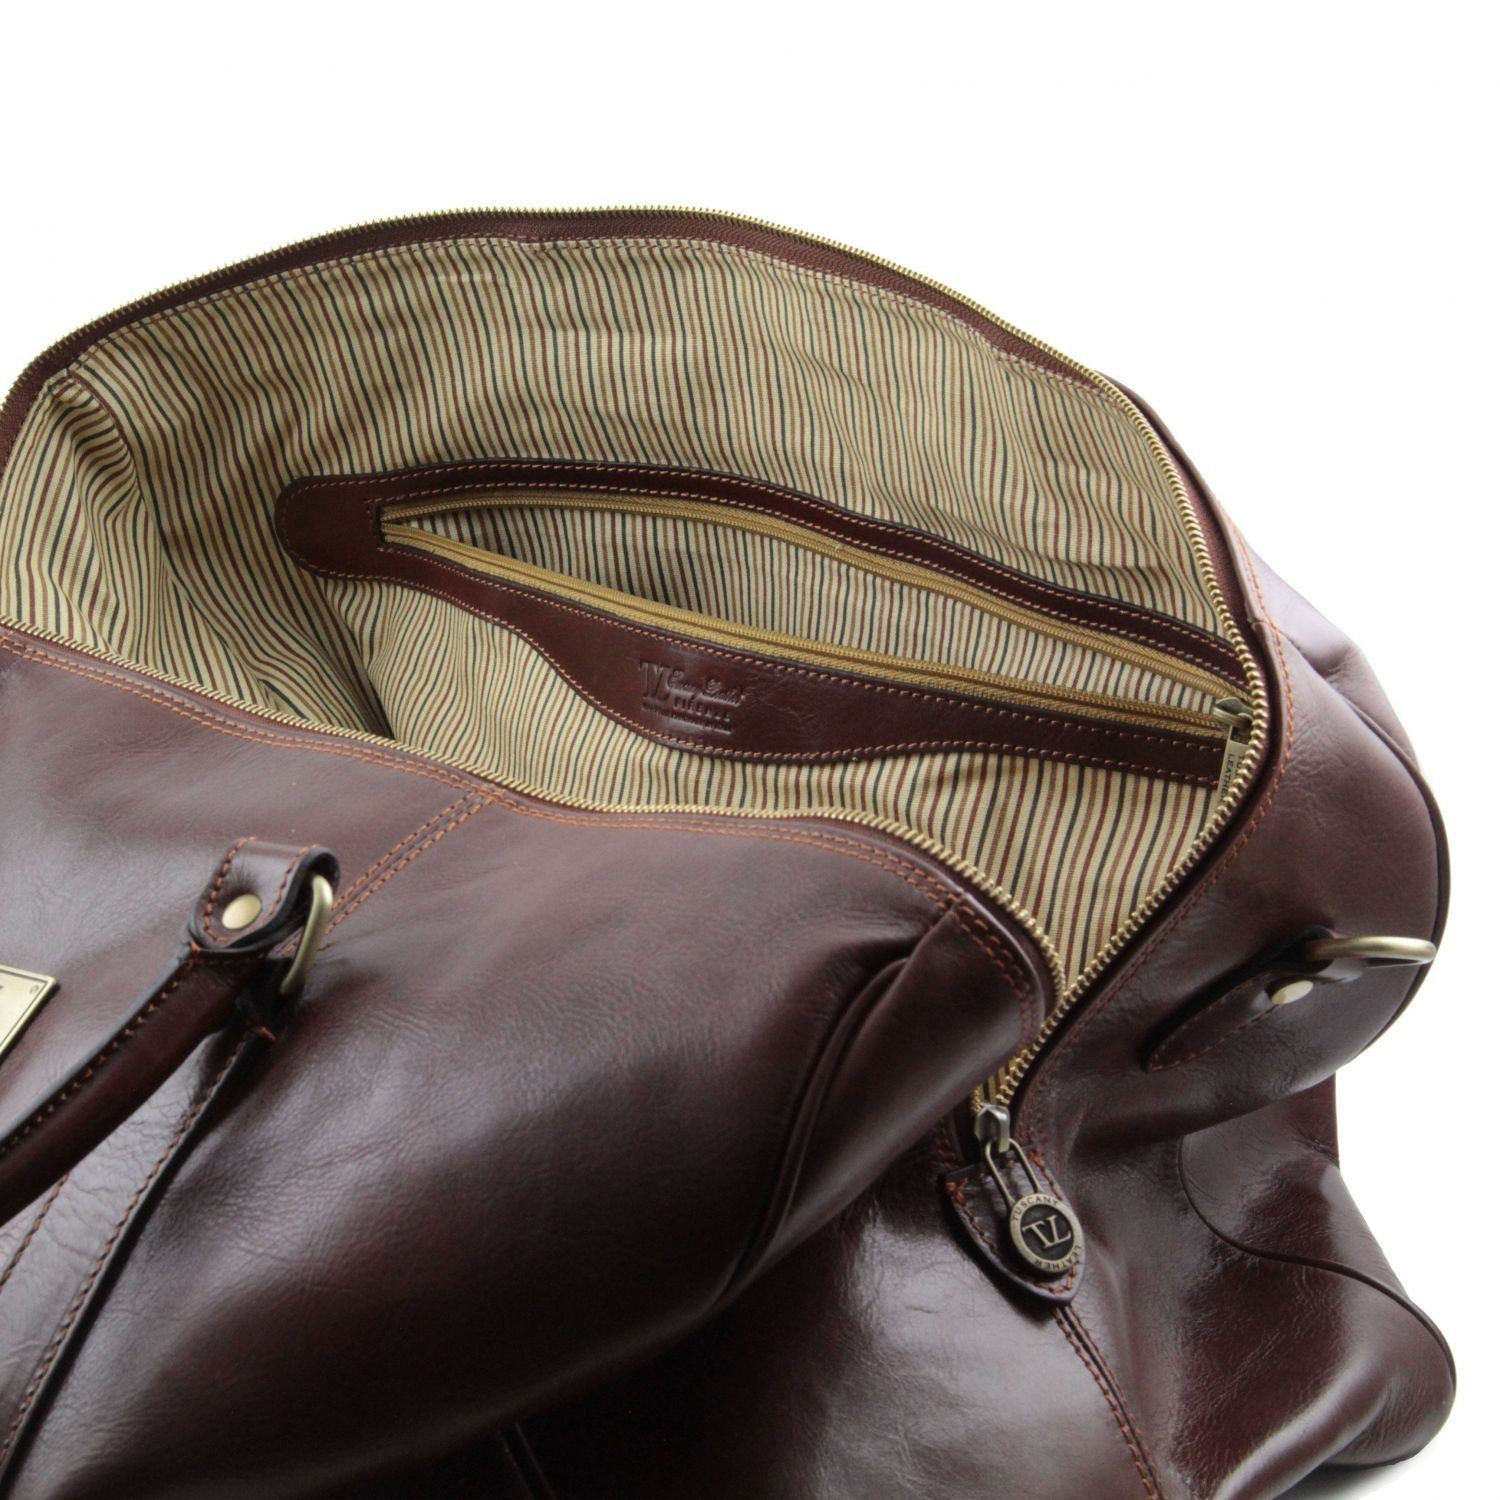 TL Voyager - Travel leather duffle bag with pocket on the backside - Large size (TL141247) - Leather Travel bags | DILUSSOBAGS